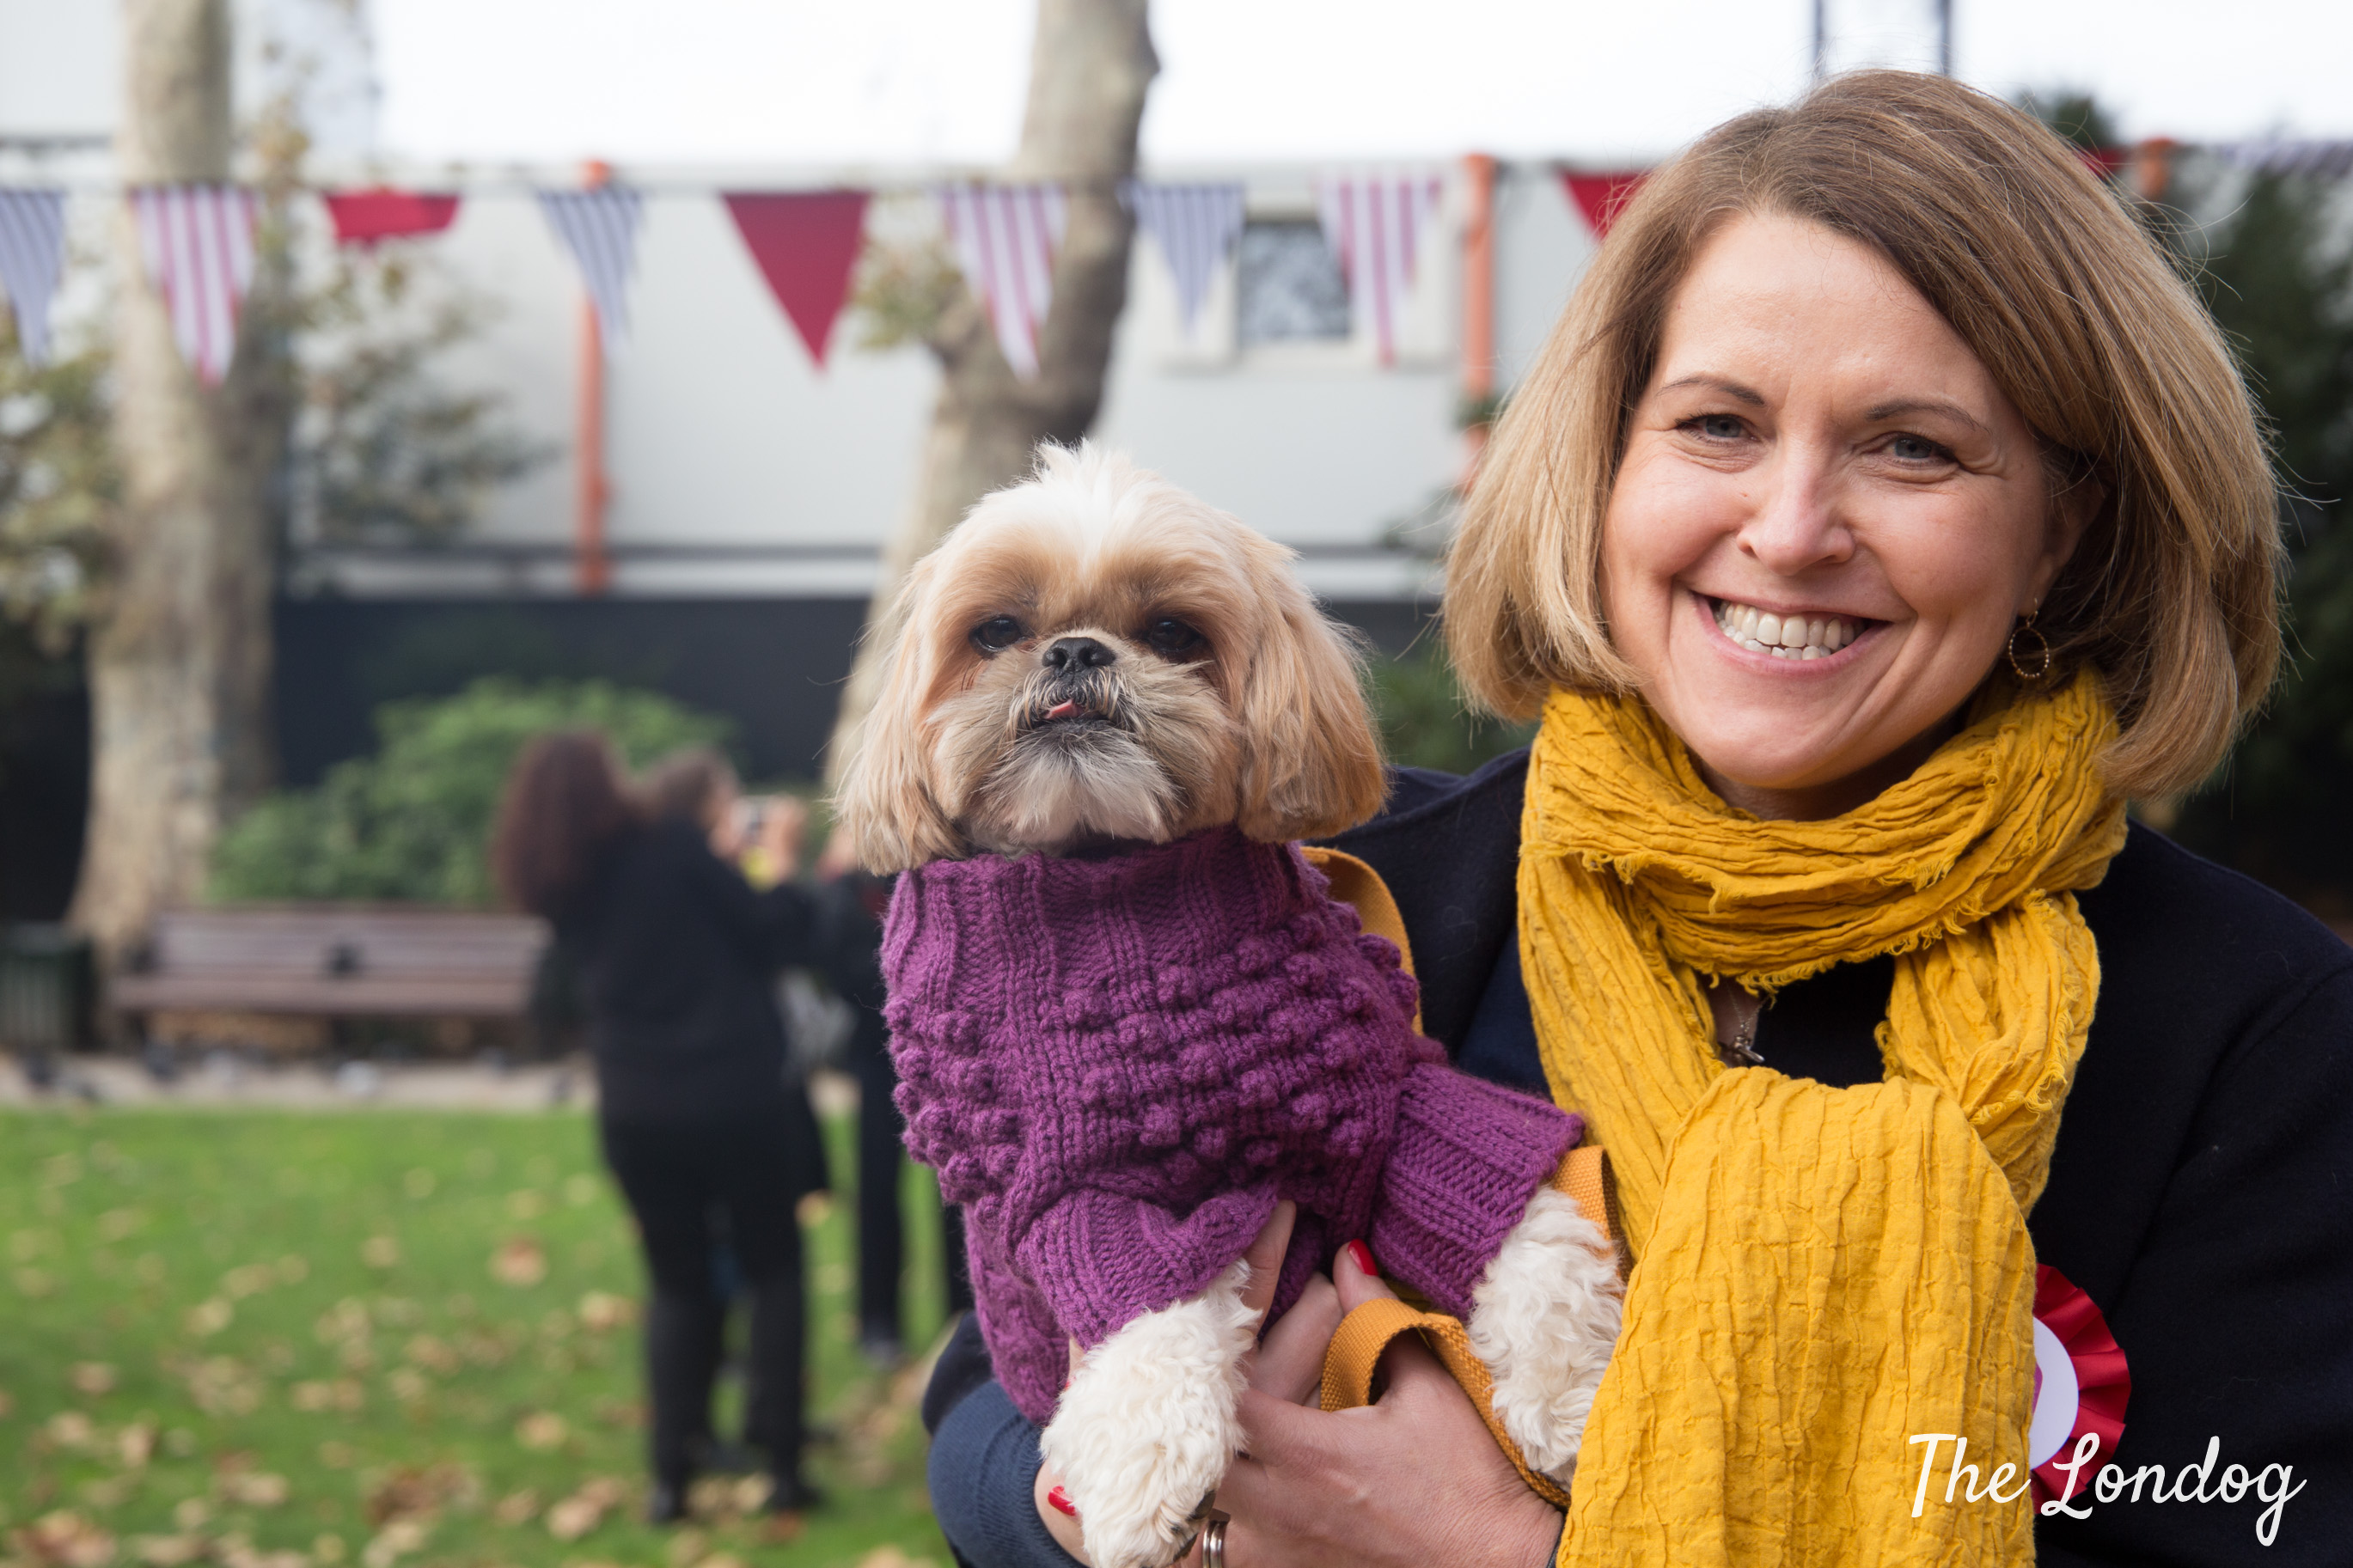 Little dog in violet jumper with his owner wearing a yellow scarfat STRUZ